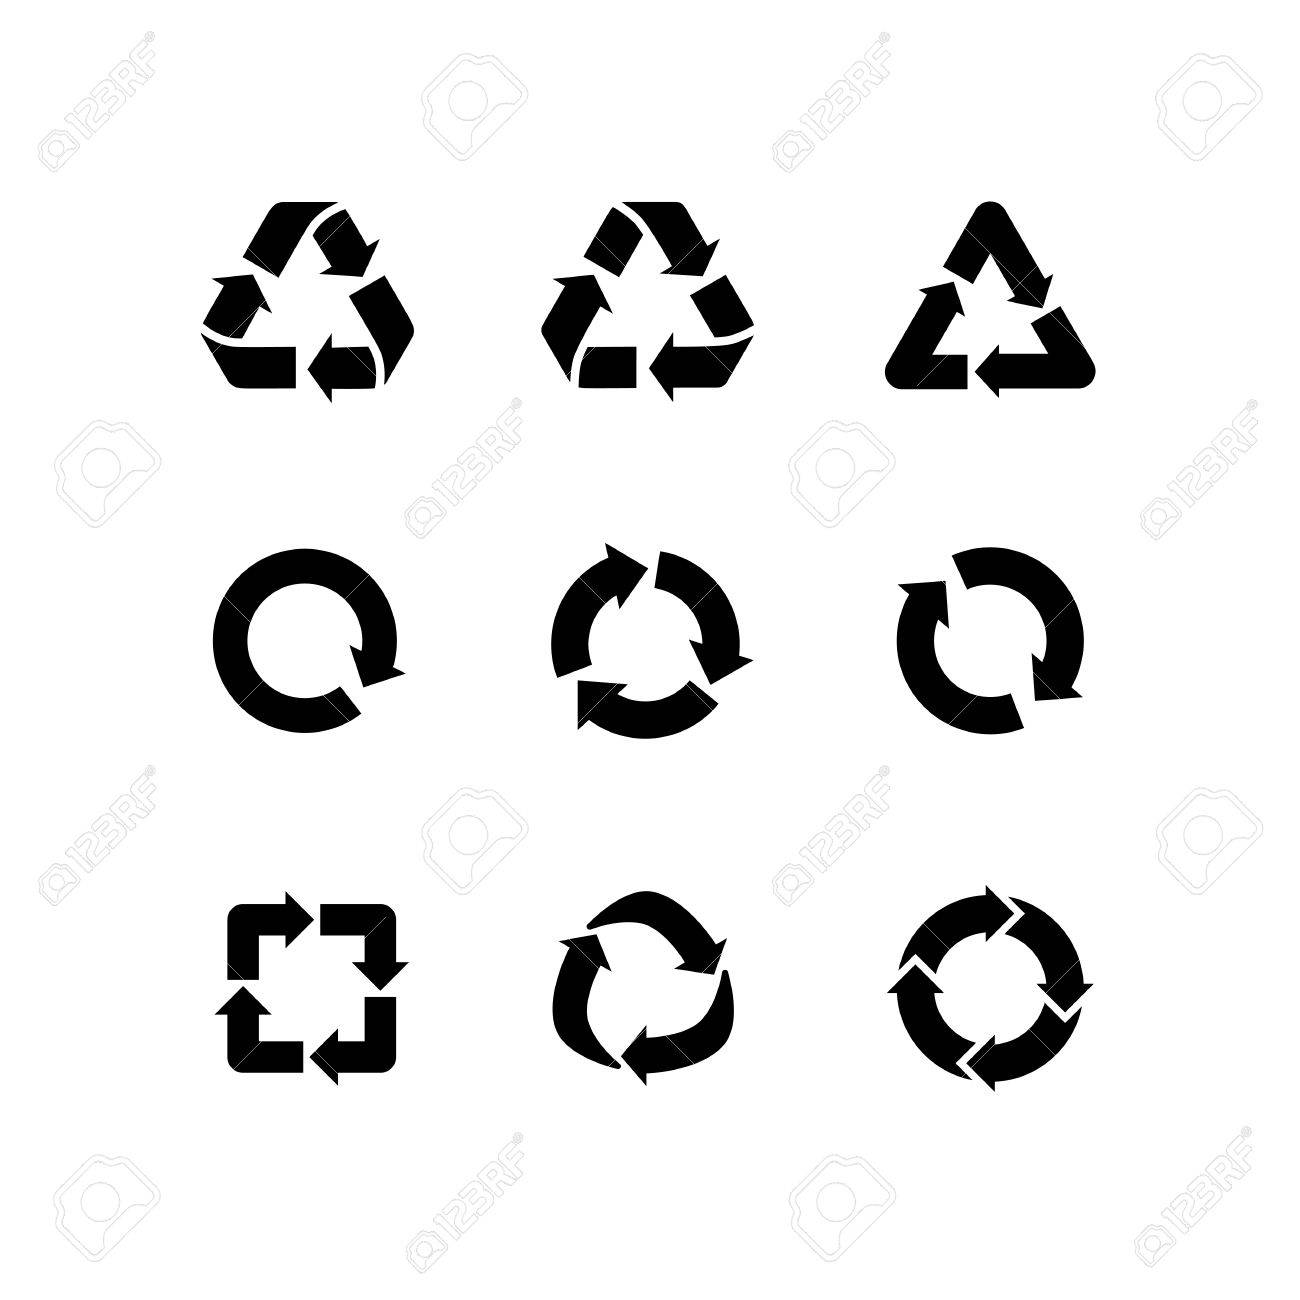 Set of vector signs of recycling, arrow icons isolated on white. Recycle icons, reuse logo, reduce symbol. Ecological symbols of recycle, environment icons collection. Recycle sign - 58789728